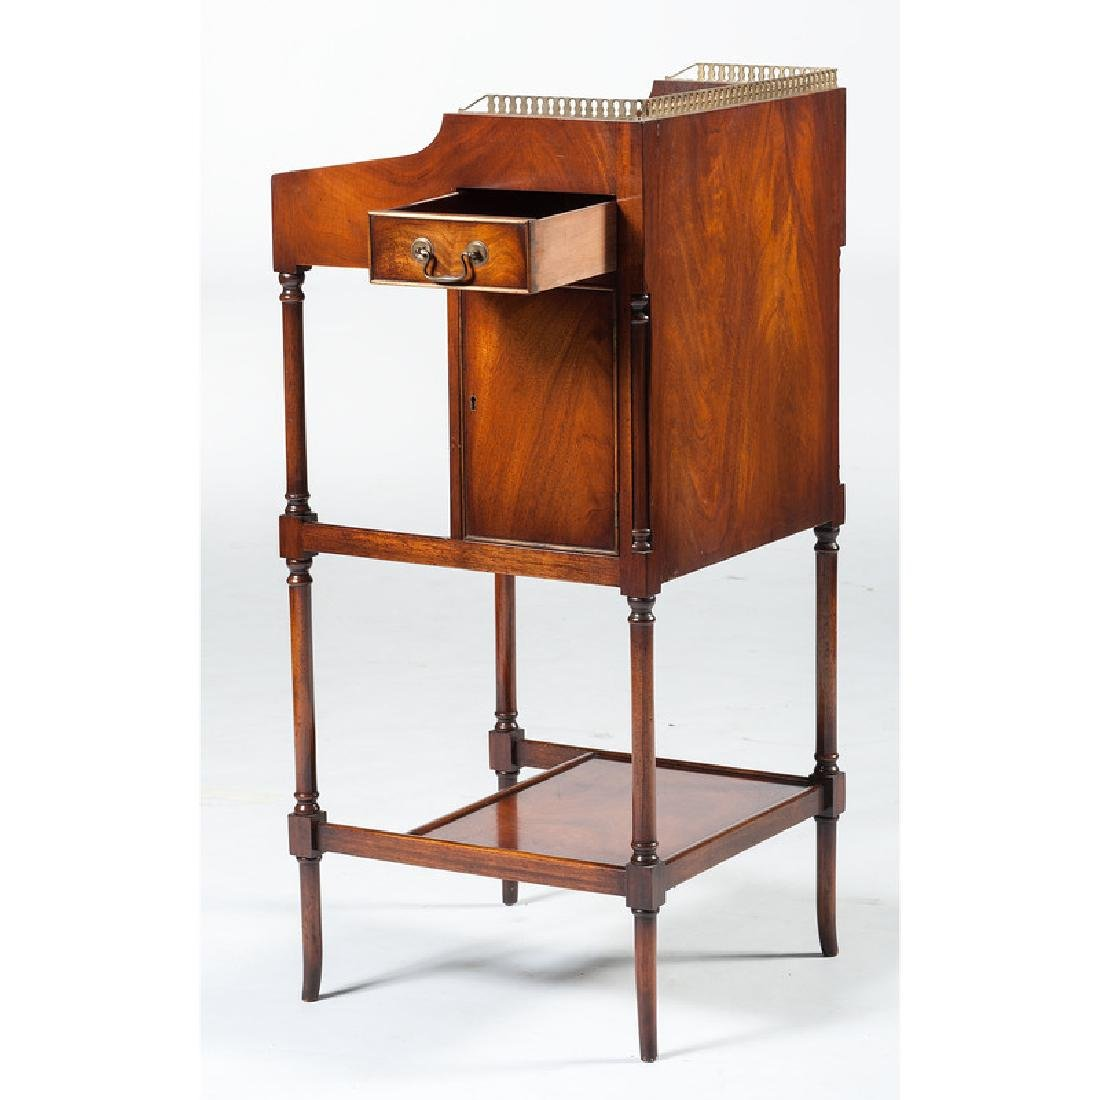 English Mahogany Desk with Stool - 6